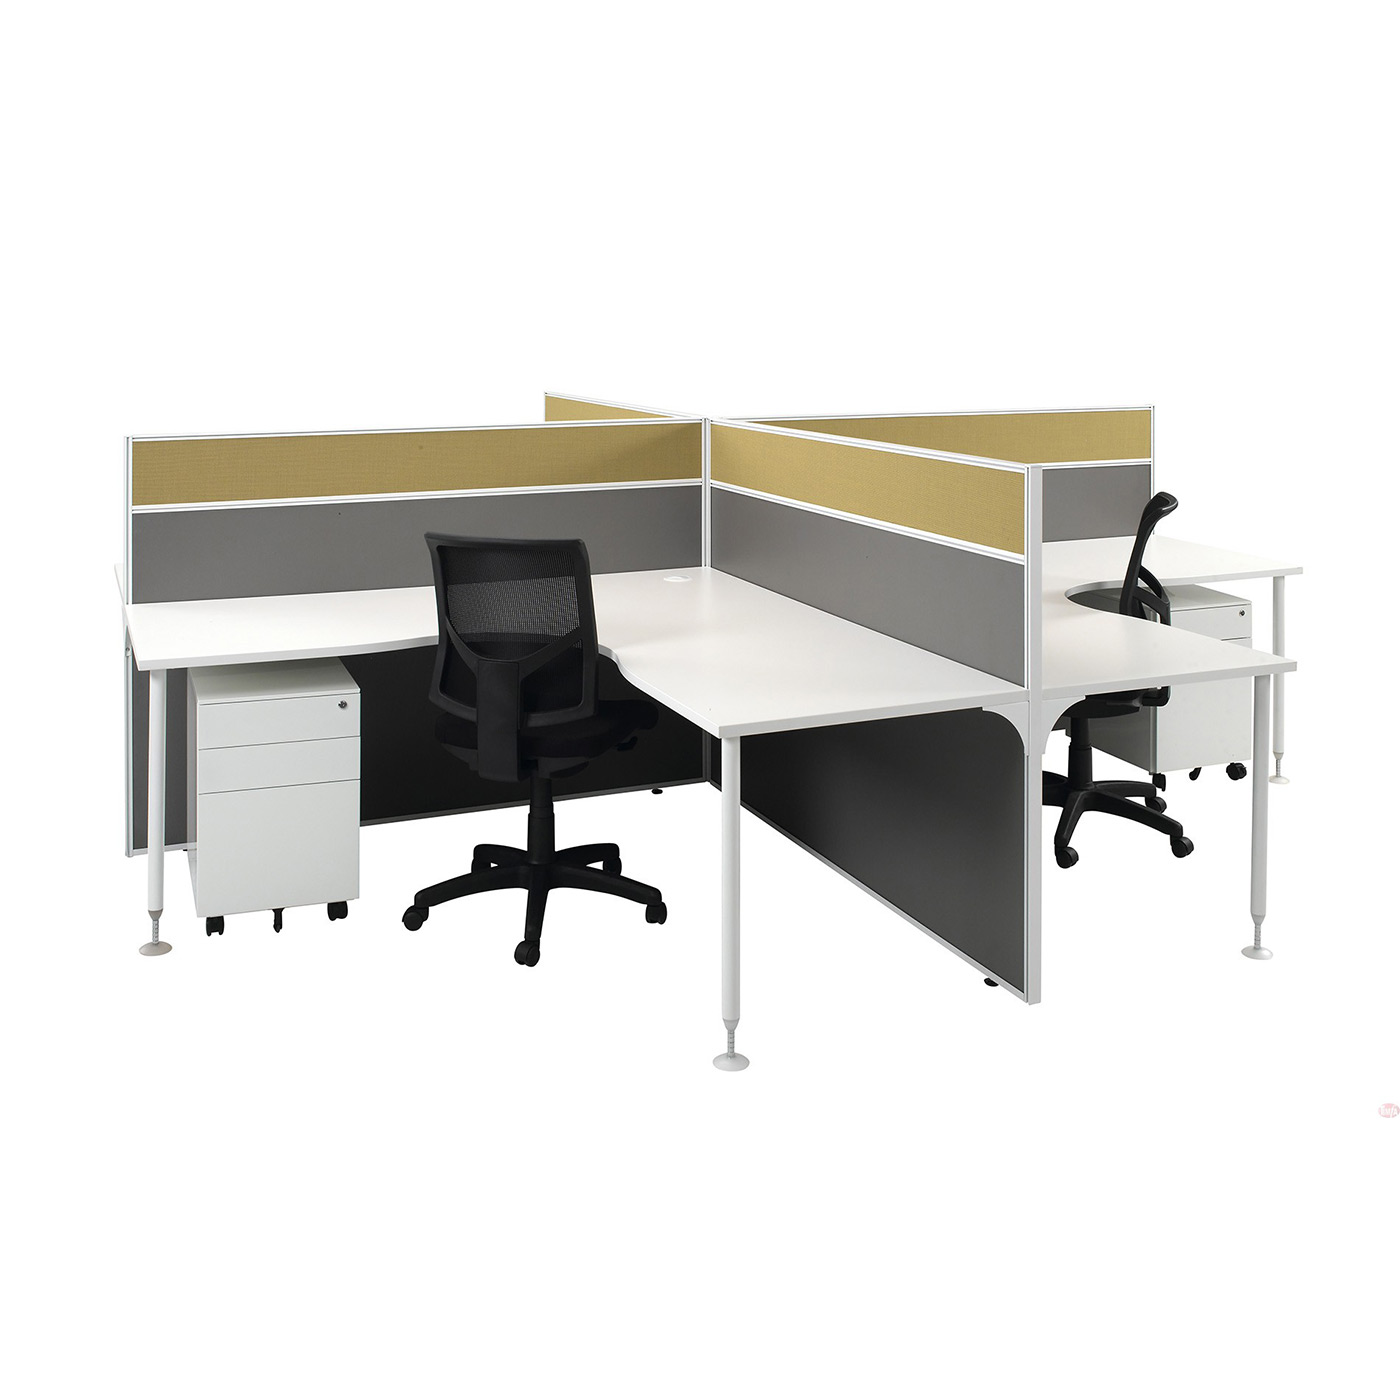 Office Works Sydney Office Workstations Sydney Timfa Work Stations Furniture